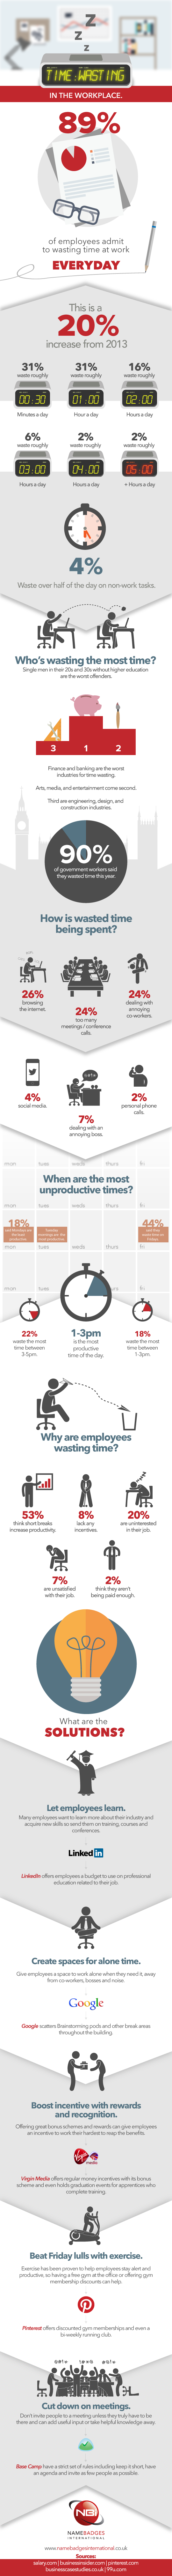 Time Wasting in the Workplace